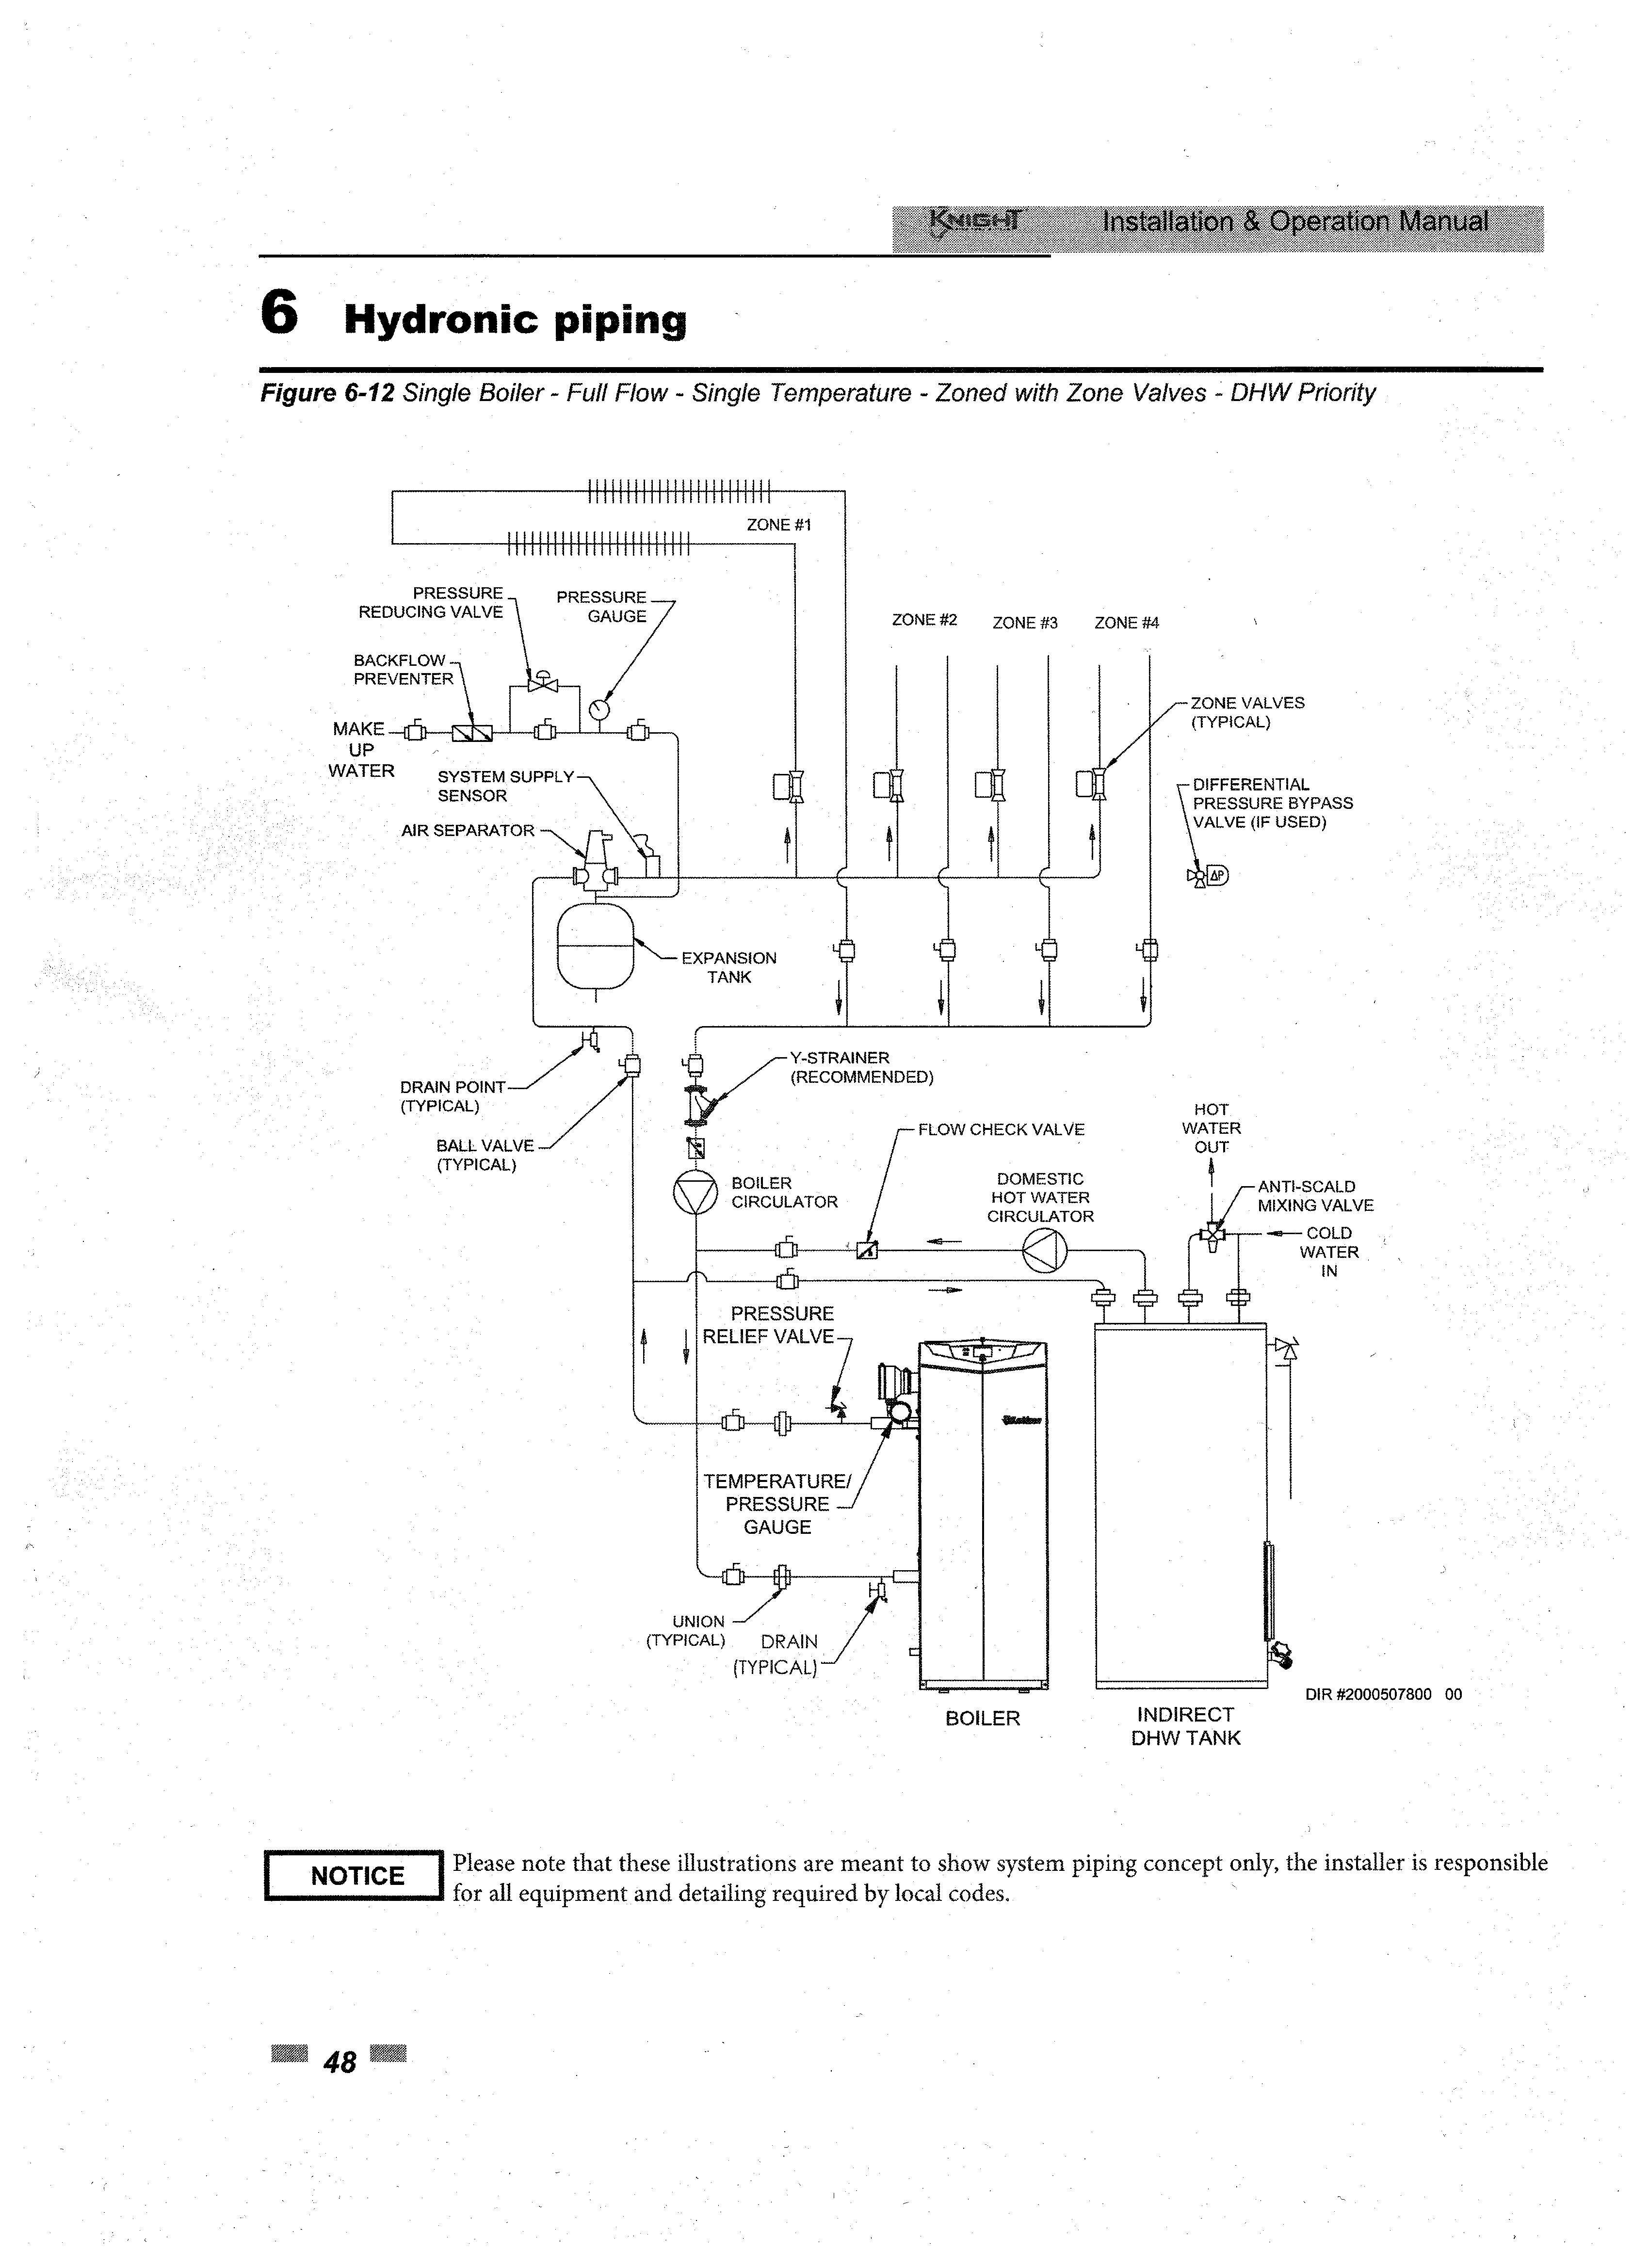 are there really 10-1 mod cons — Heating Help: The Wall